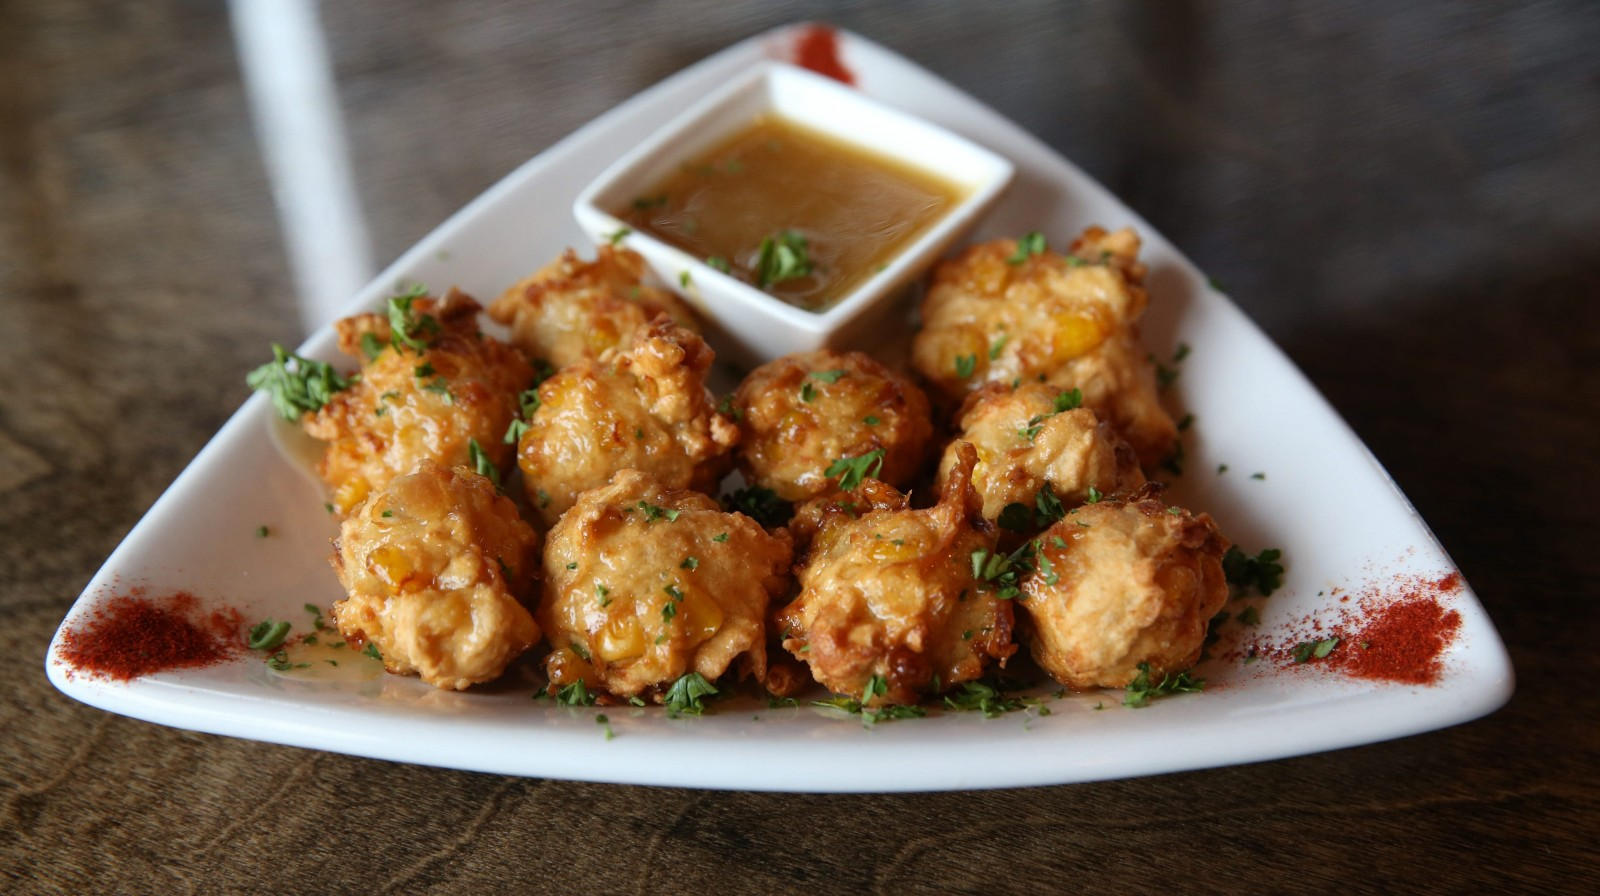 The corn fritters at the Griffon Gastropub in Clarence are spoonfuls of fresh sweet corn-filled batter, flash-fried and served with Vermont maple butter. (Sharon Cantillon/Buffalo News file photo)